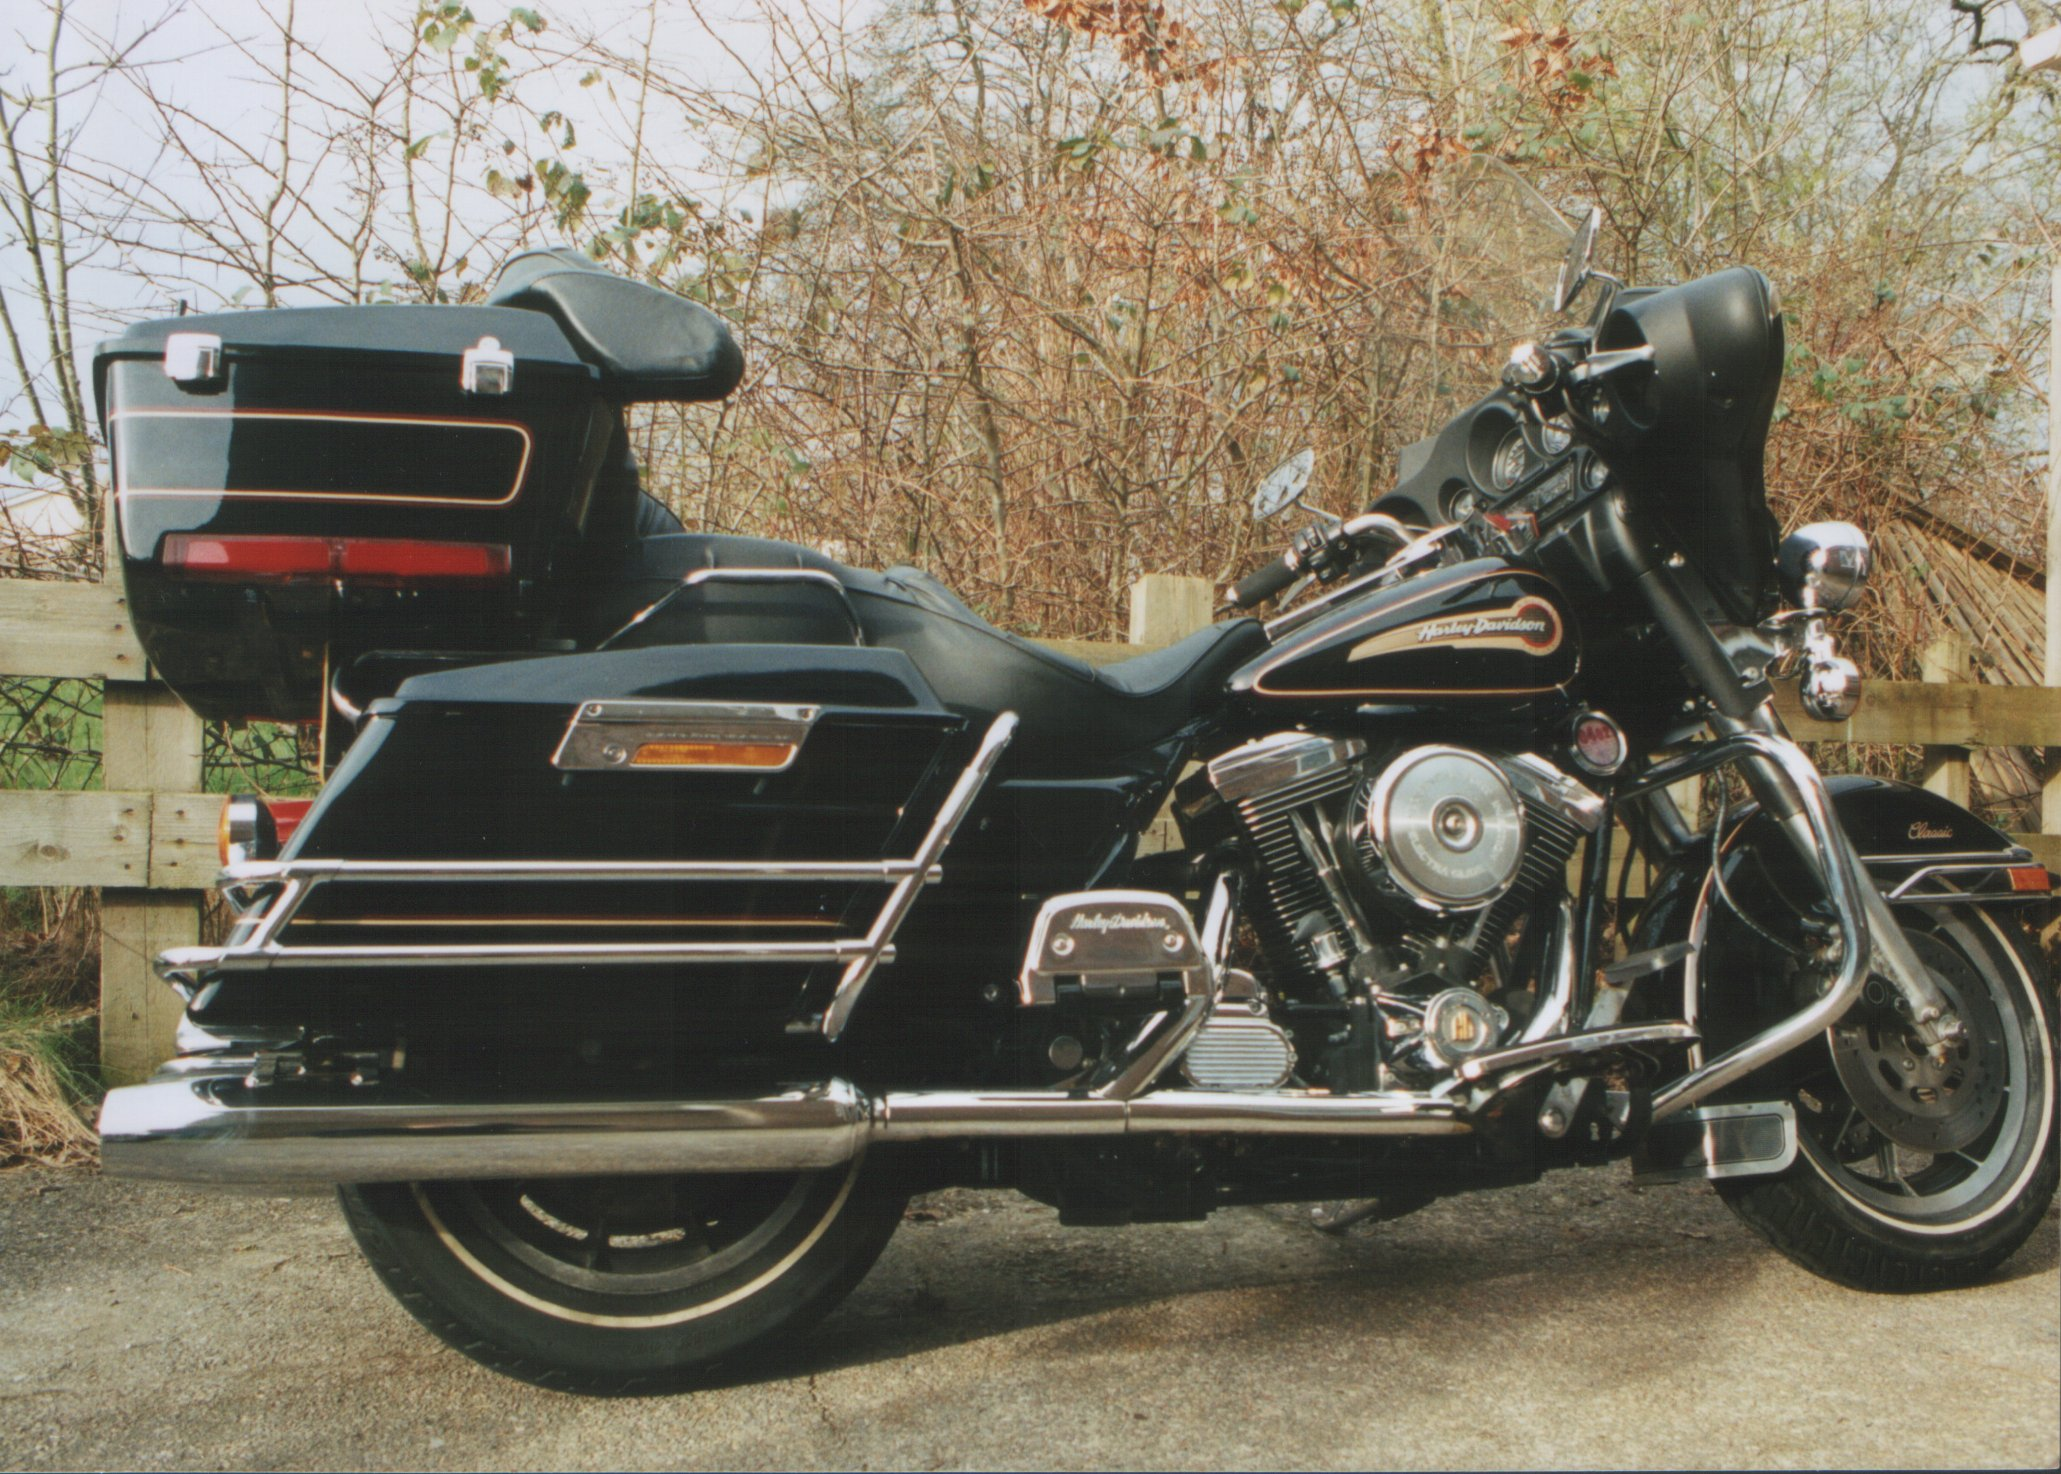 Harley-Davidson FLHTC 1340 Electra Glide Classic 1985 pics #15270